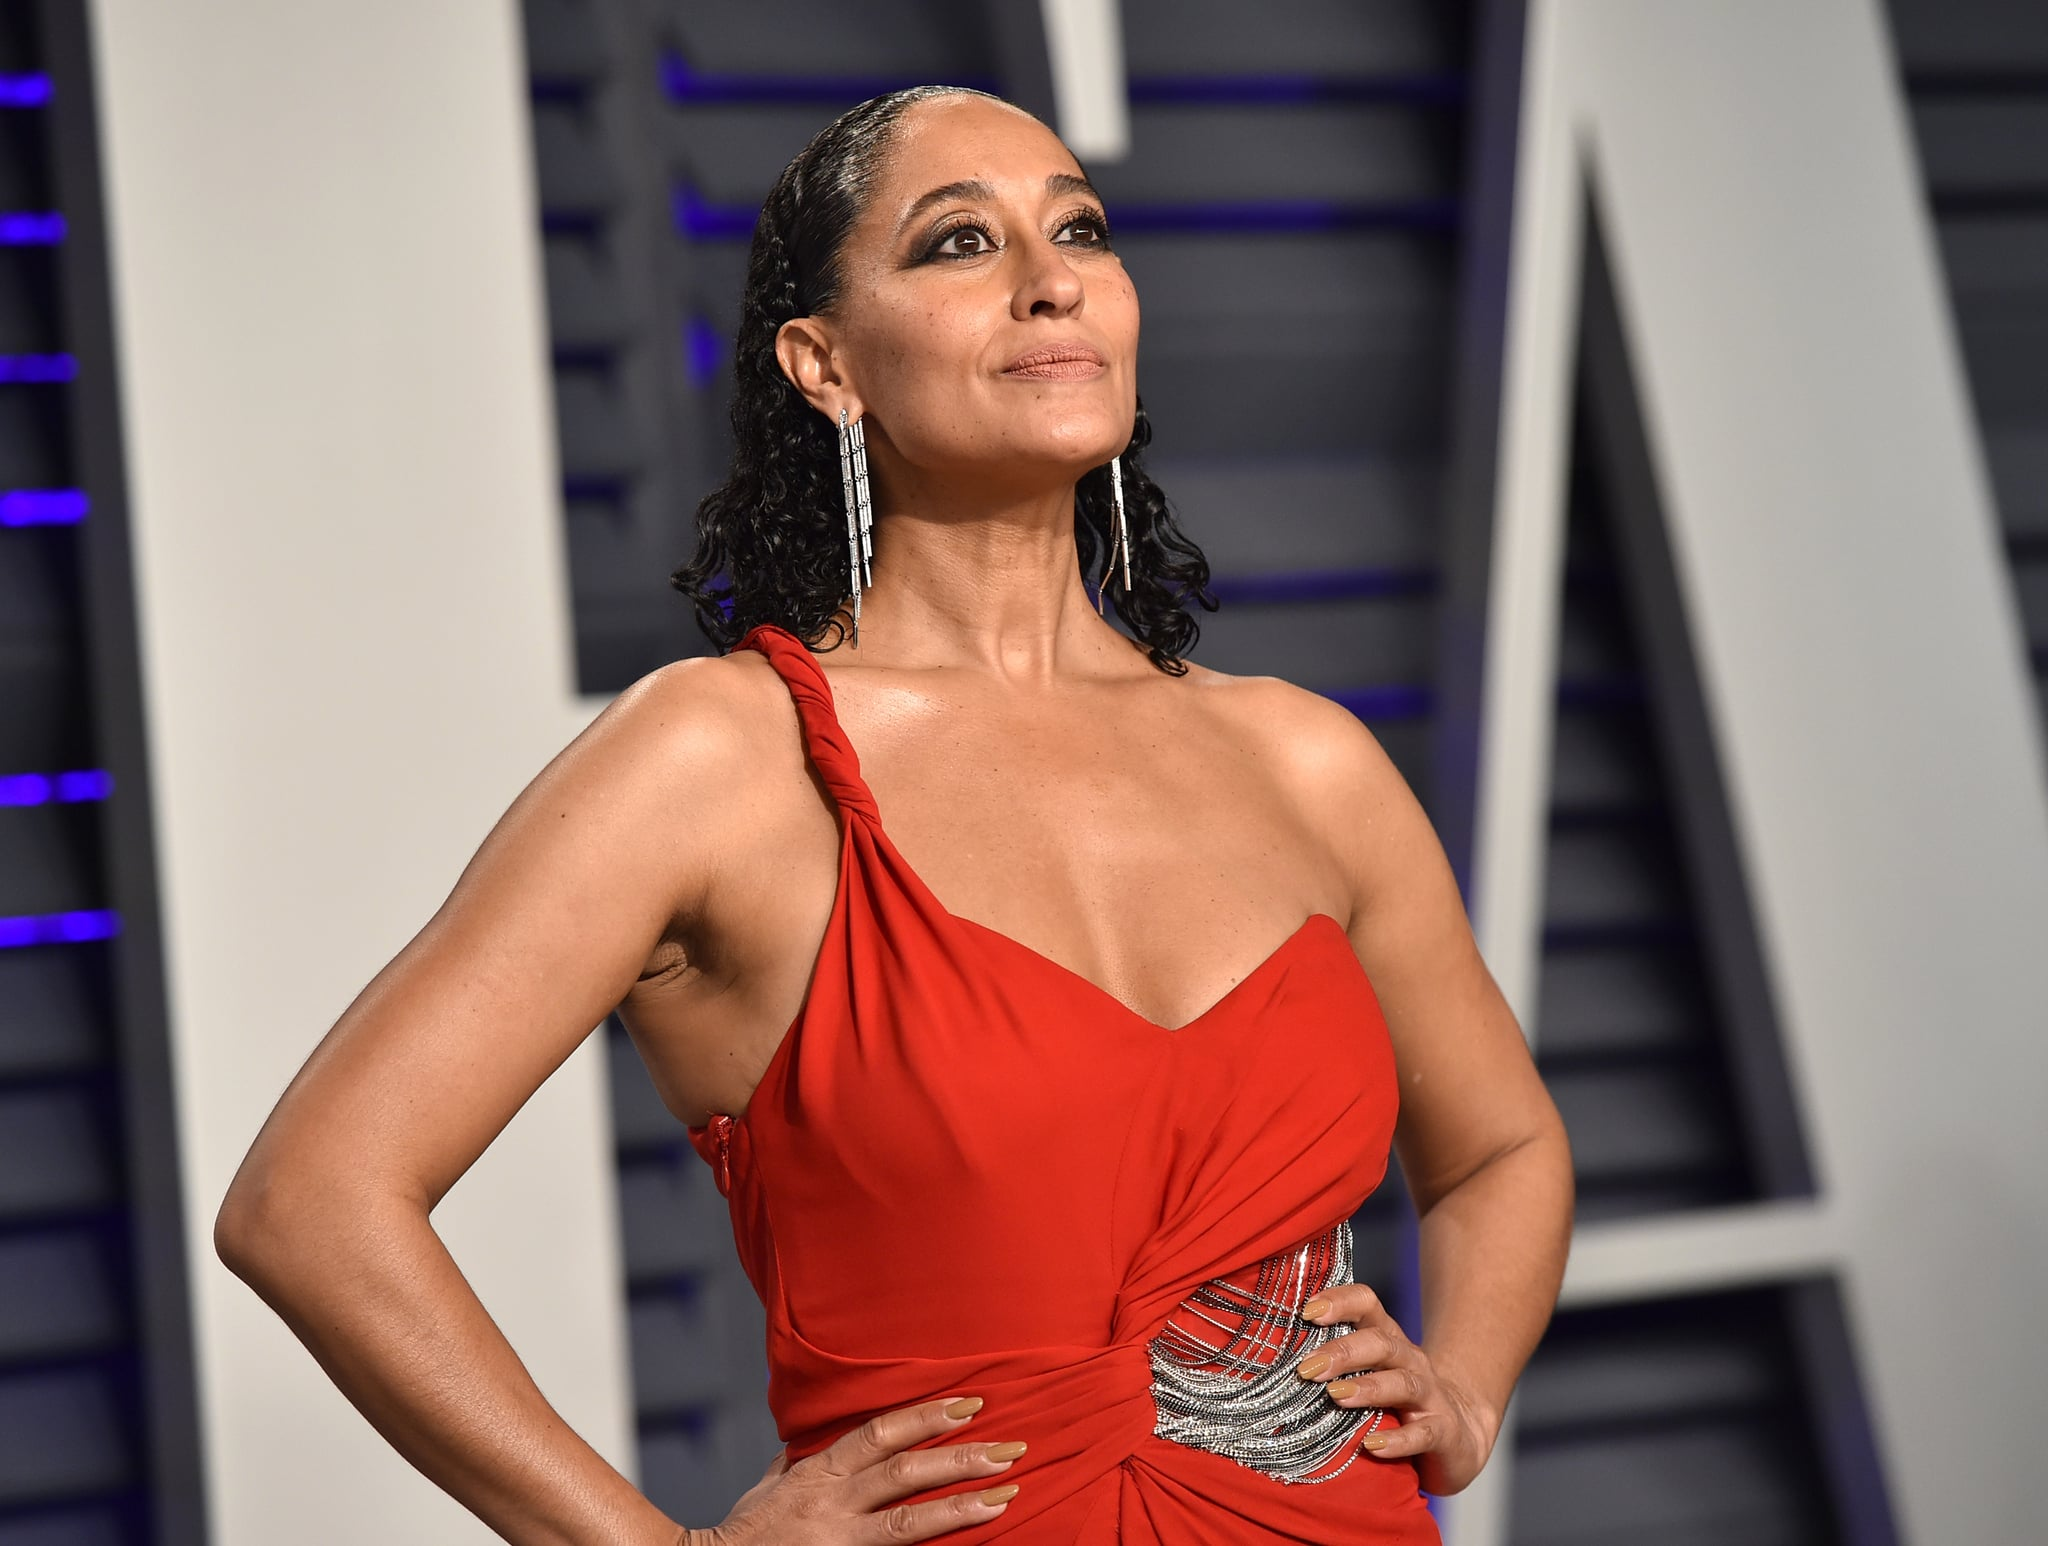 BEVERLY HILLS, CA - FEBRUARY 24:  Tracee Ellis Ross attends the 2019 Vanity Fair Oscar Party hosted by Radhika Jones at Wallis Annenberg Centre for the Performing Arts on February 24, 2019 in Beverly Hills, California.  (Photo by John Shearer/Getty Images)